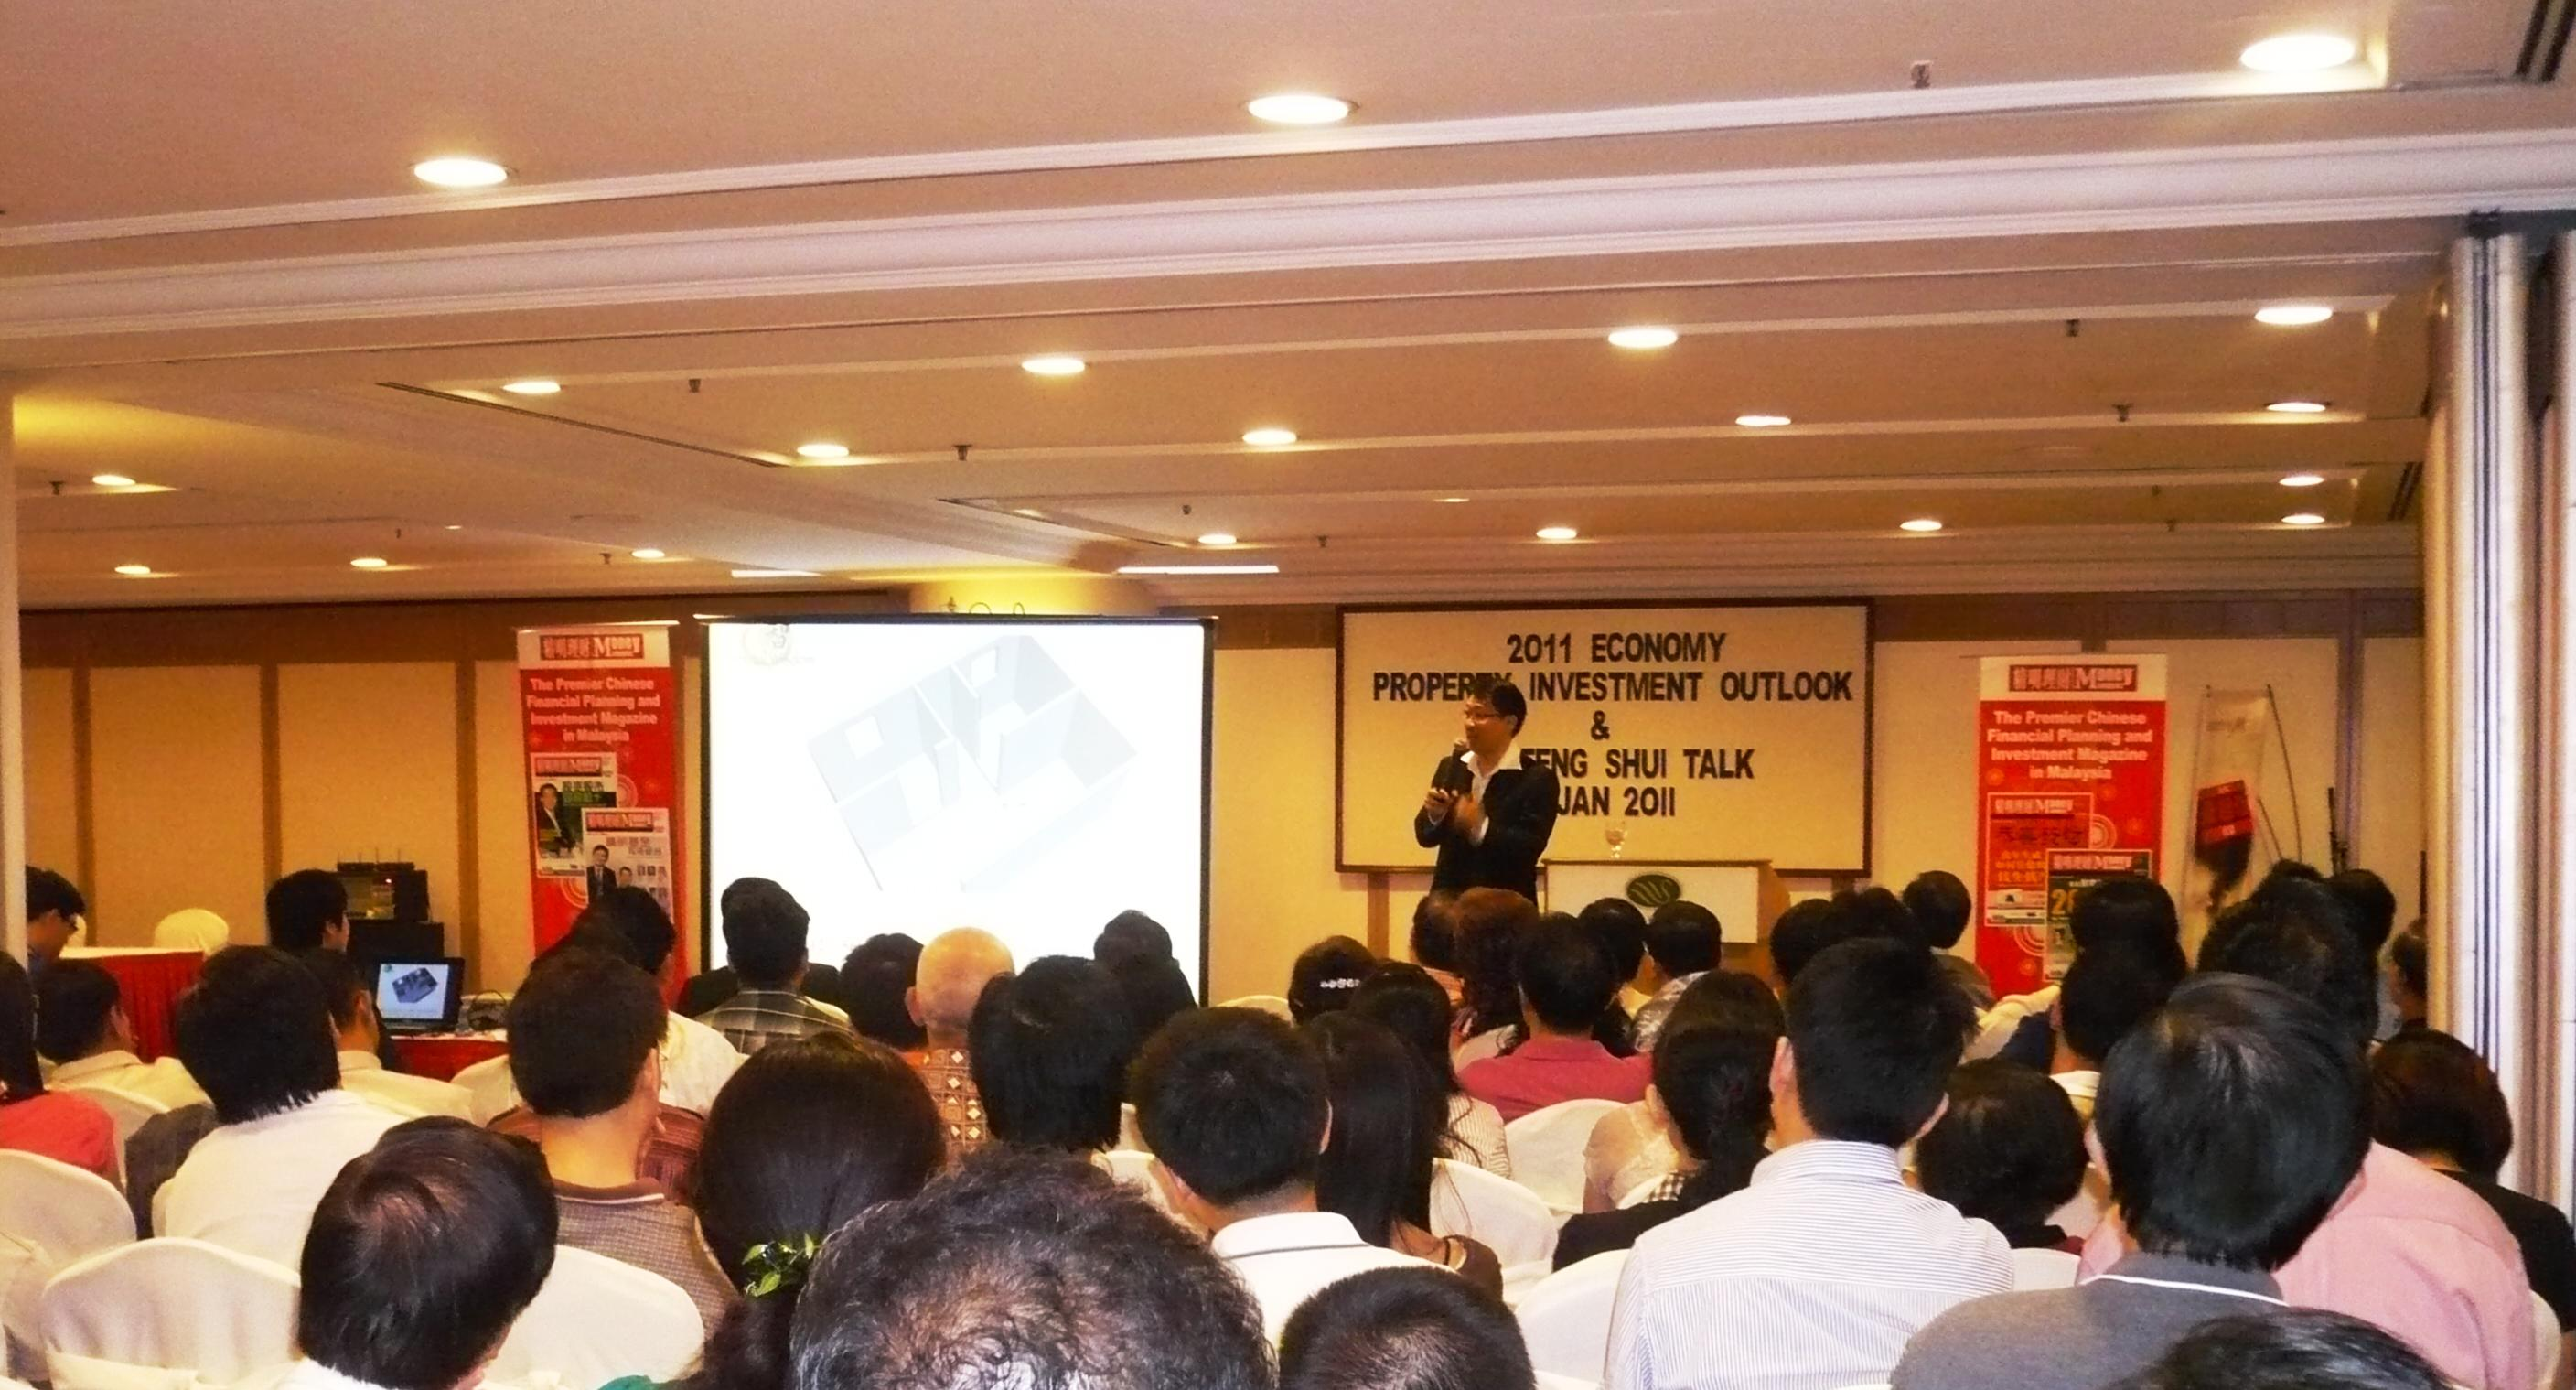 Master Soon at Sunway Hotel for Feng Shui Talk 2011. Sponsored by Red Tone and Organized By Money Compass